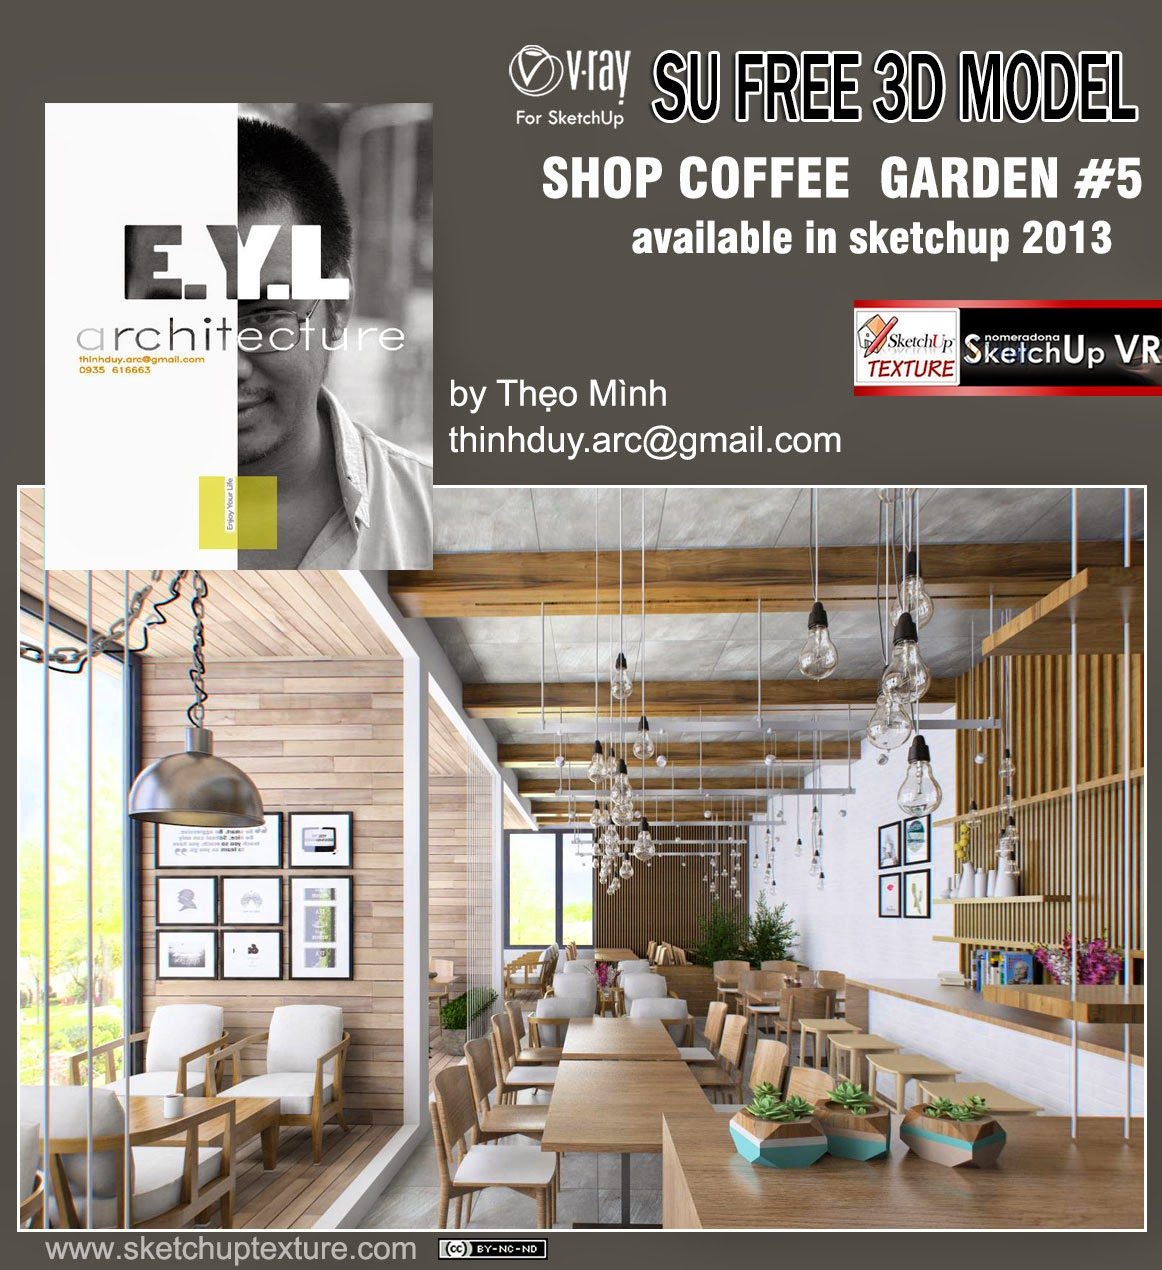 Sketchup texture free model garden coffee bar